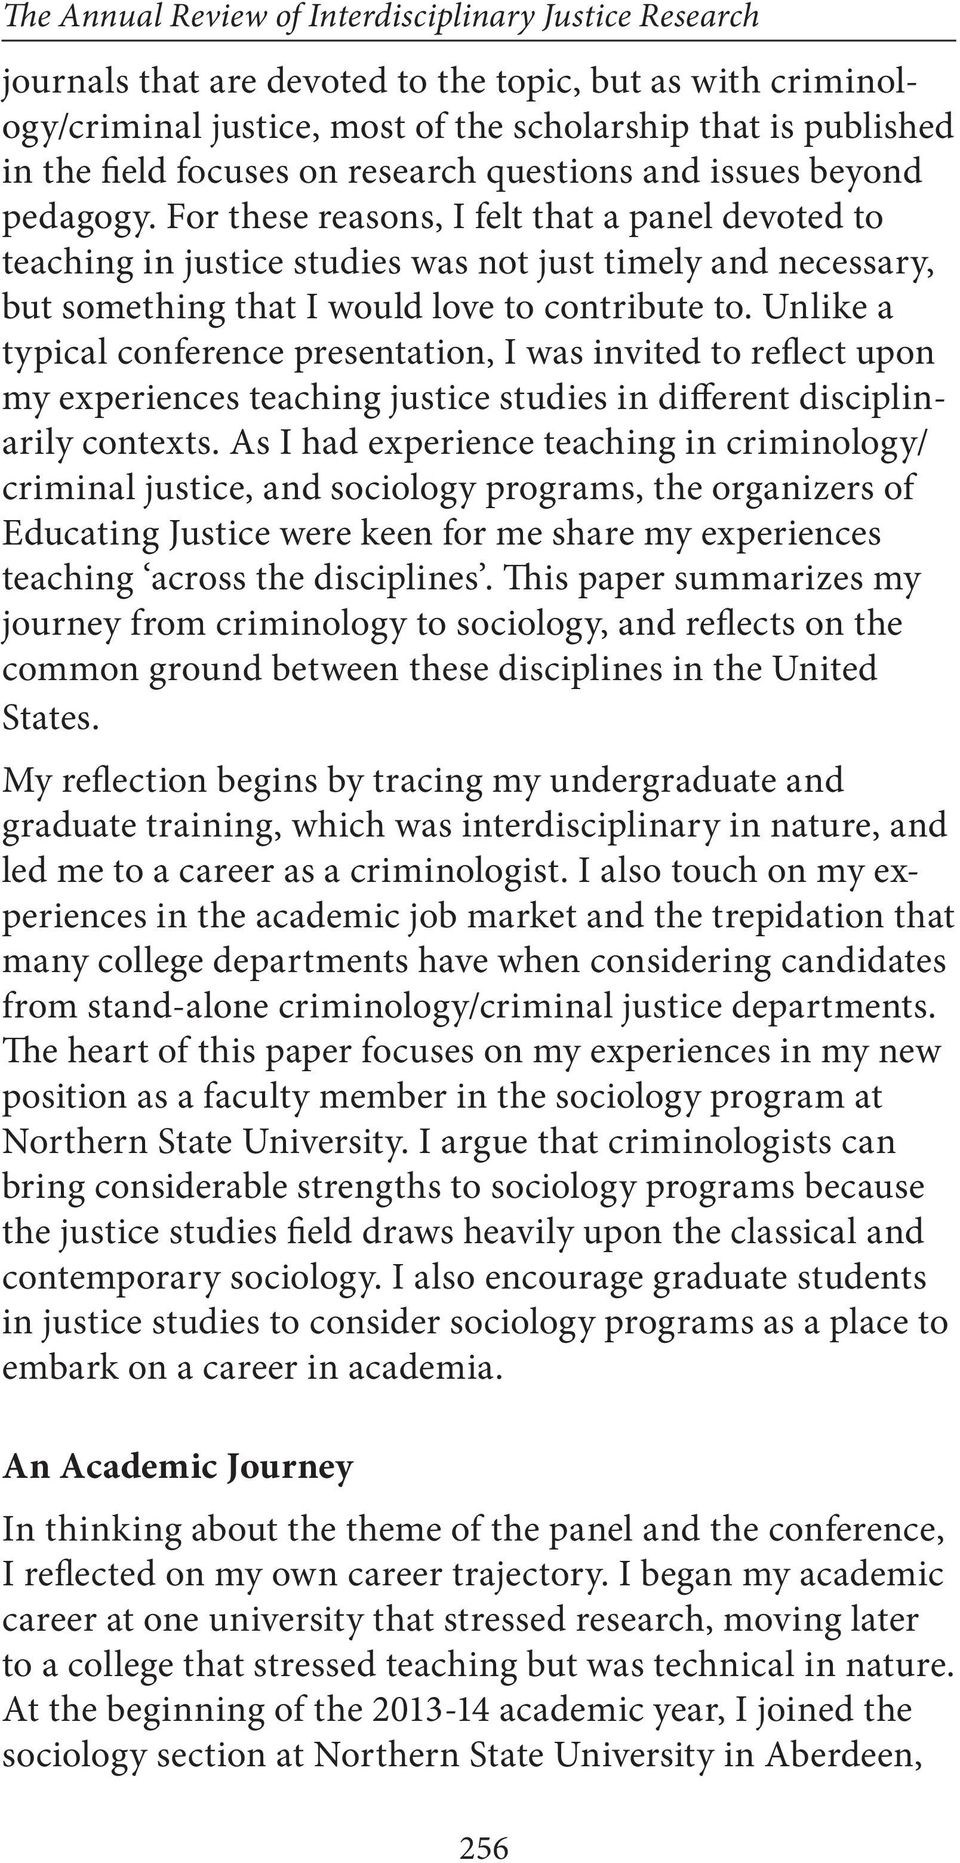 For these reasons, I felt that a panel devoted to teaching in justice studies was not just timely and necessary, but something that I would love to contribute to.